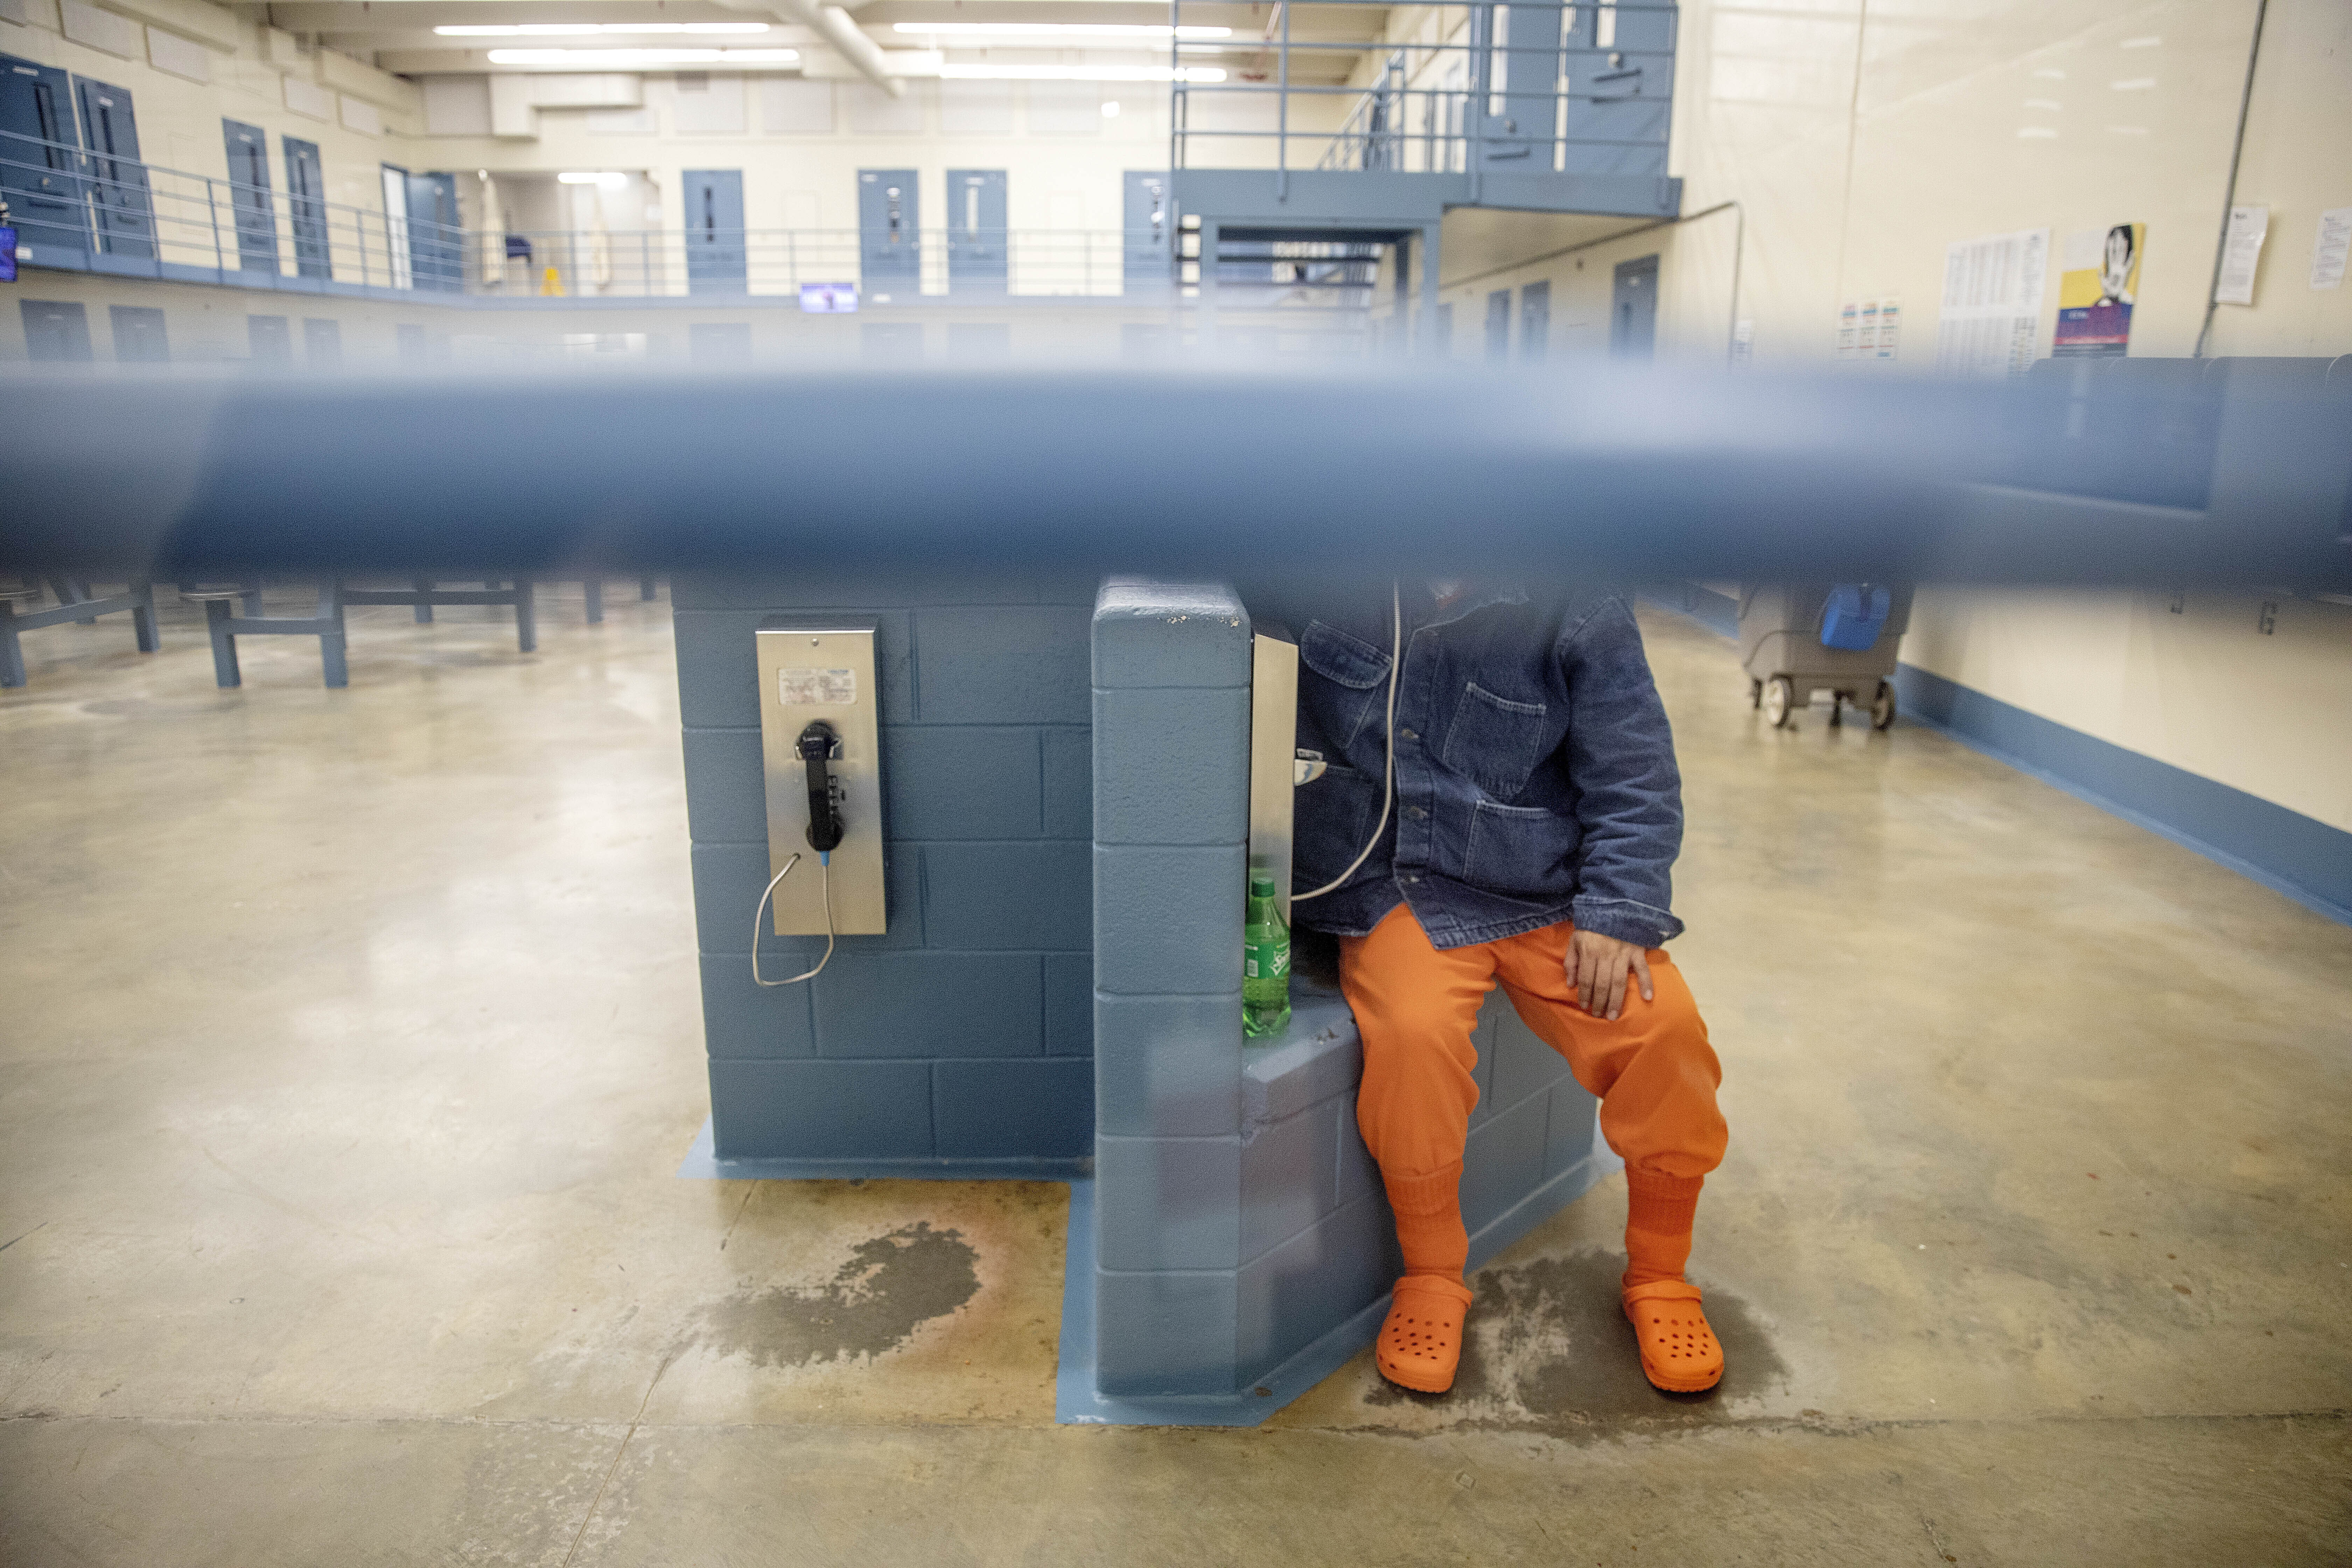 A detainee talks on the phone in his pod at the Stewart Detention Center, Friday, Nov. 15, 2019, in Lumpkin, Ga.